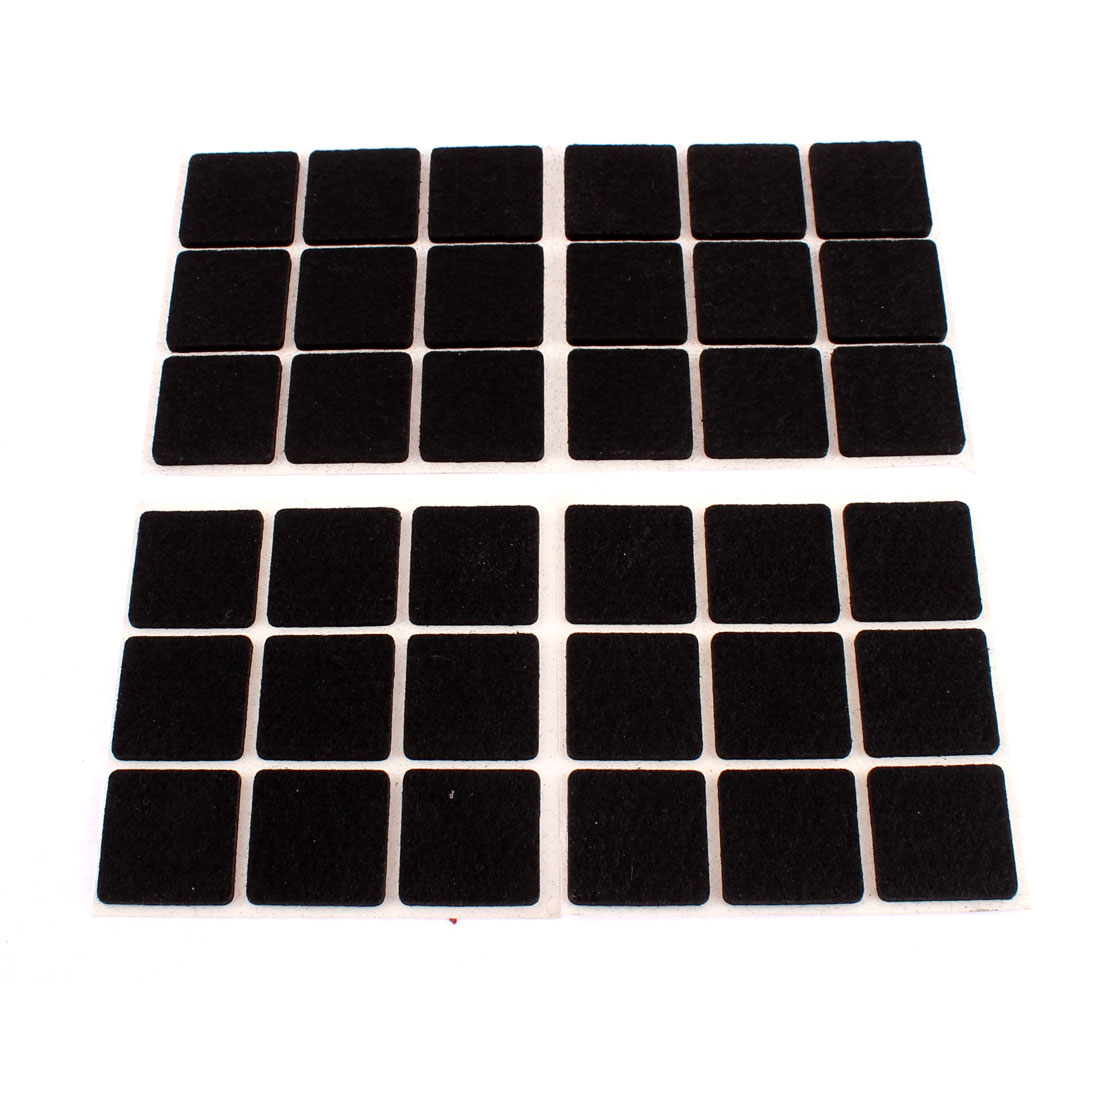 Furniture Feet Antiskid Adhesive Protection Pads Felt Floor protector 36pcs